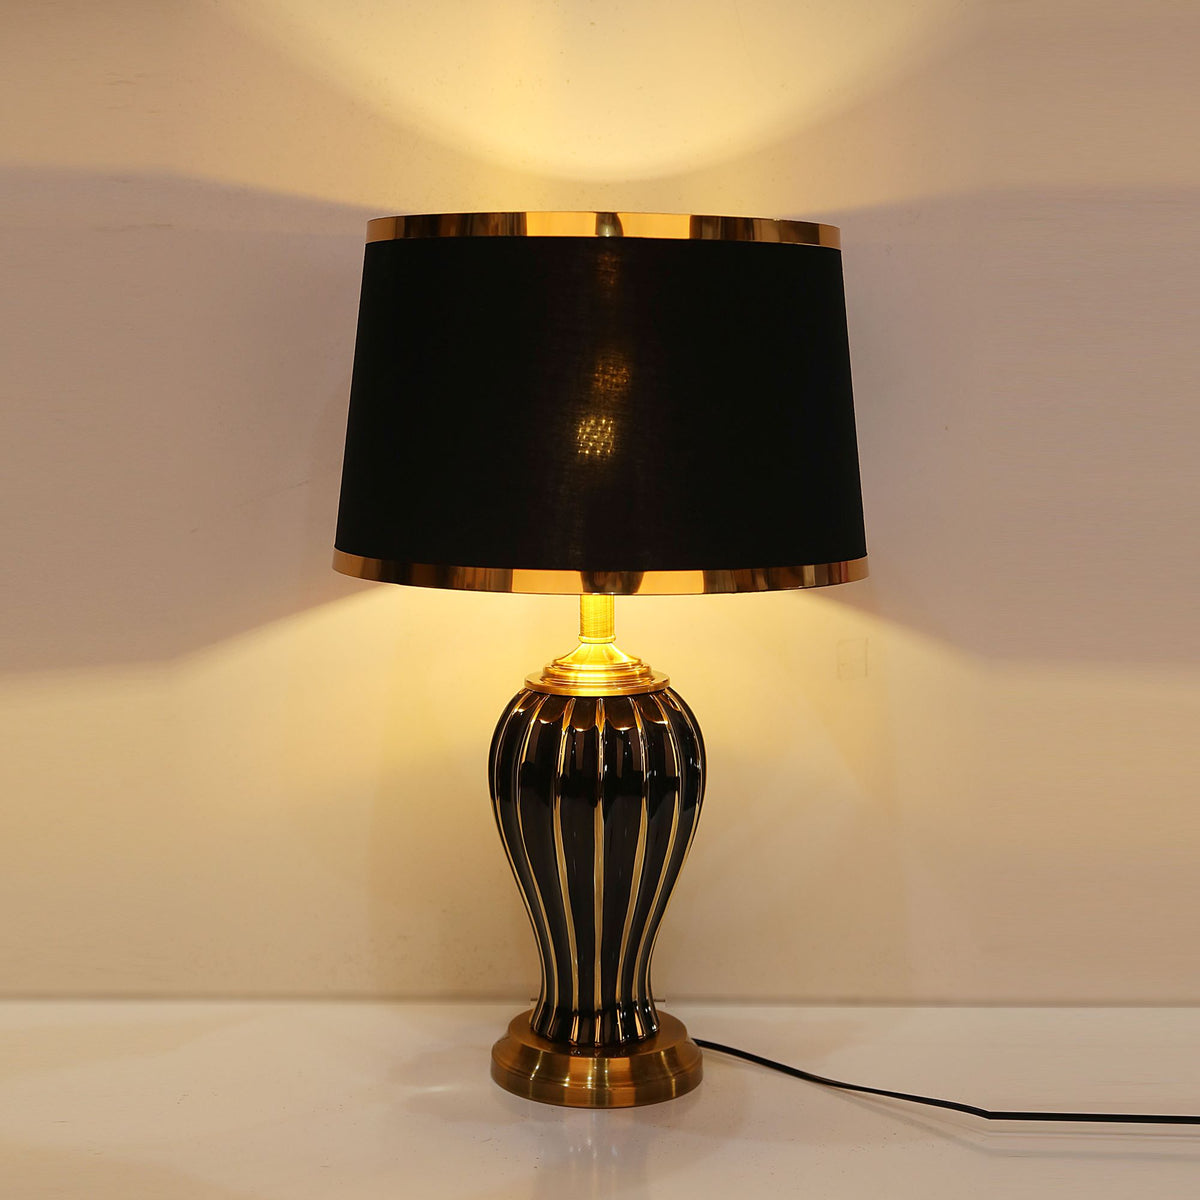 Black Vase Ceramic Table Lamp